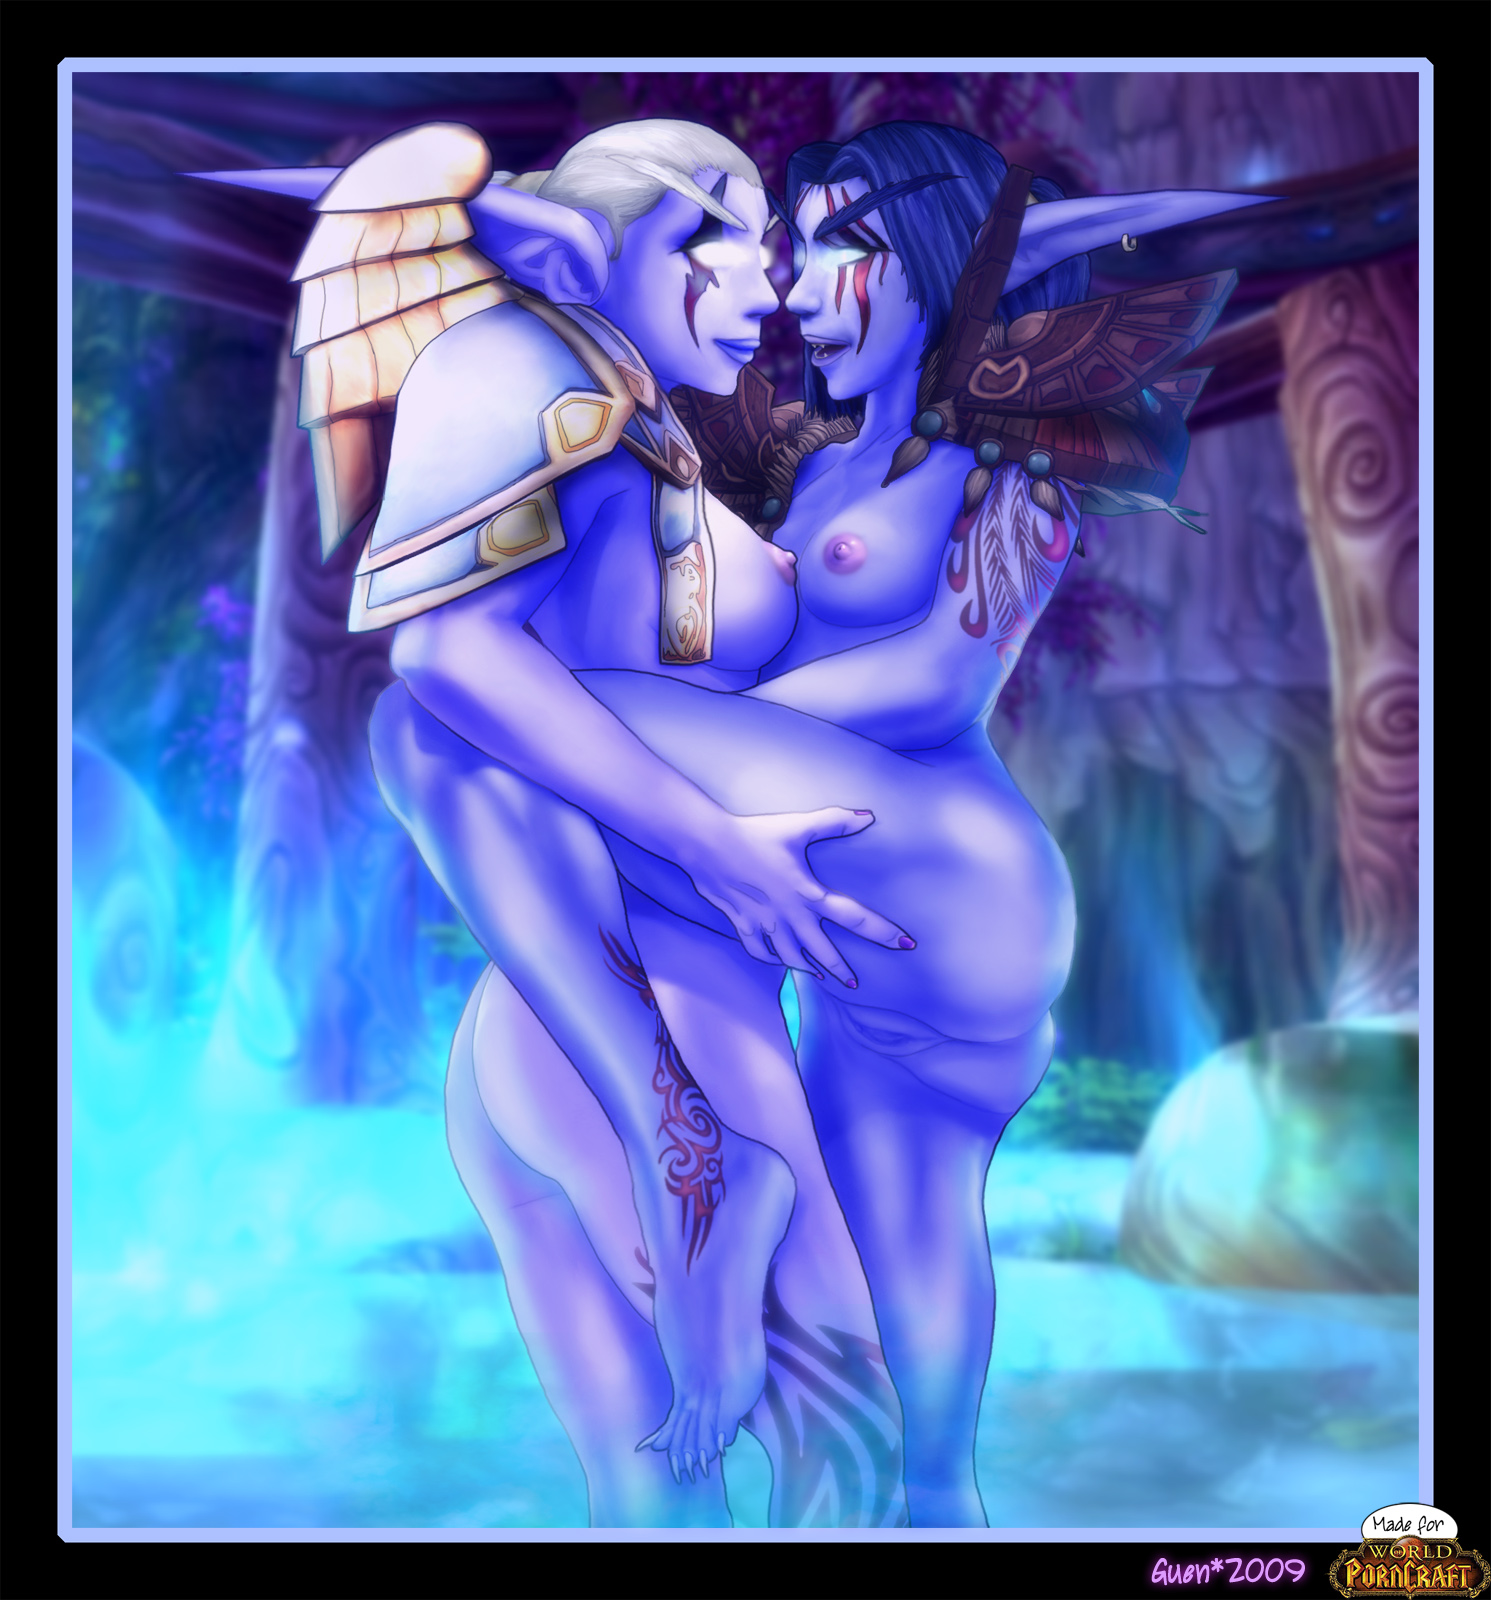 Nude pic of night elf hentay sluts